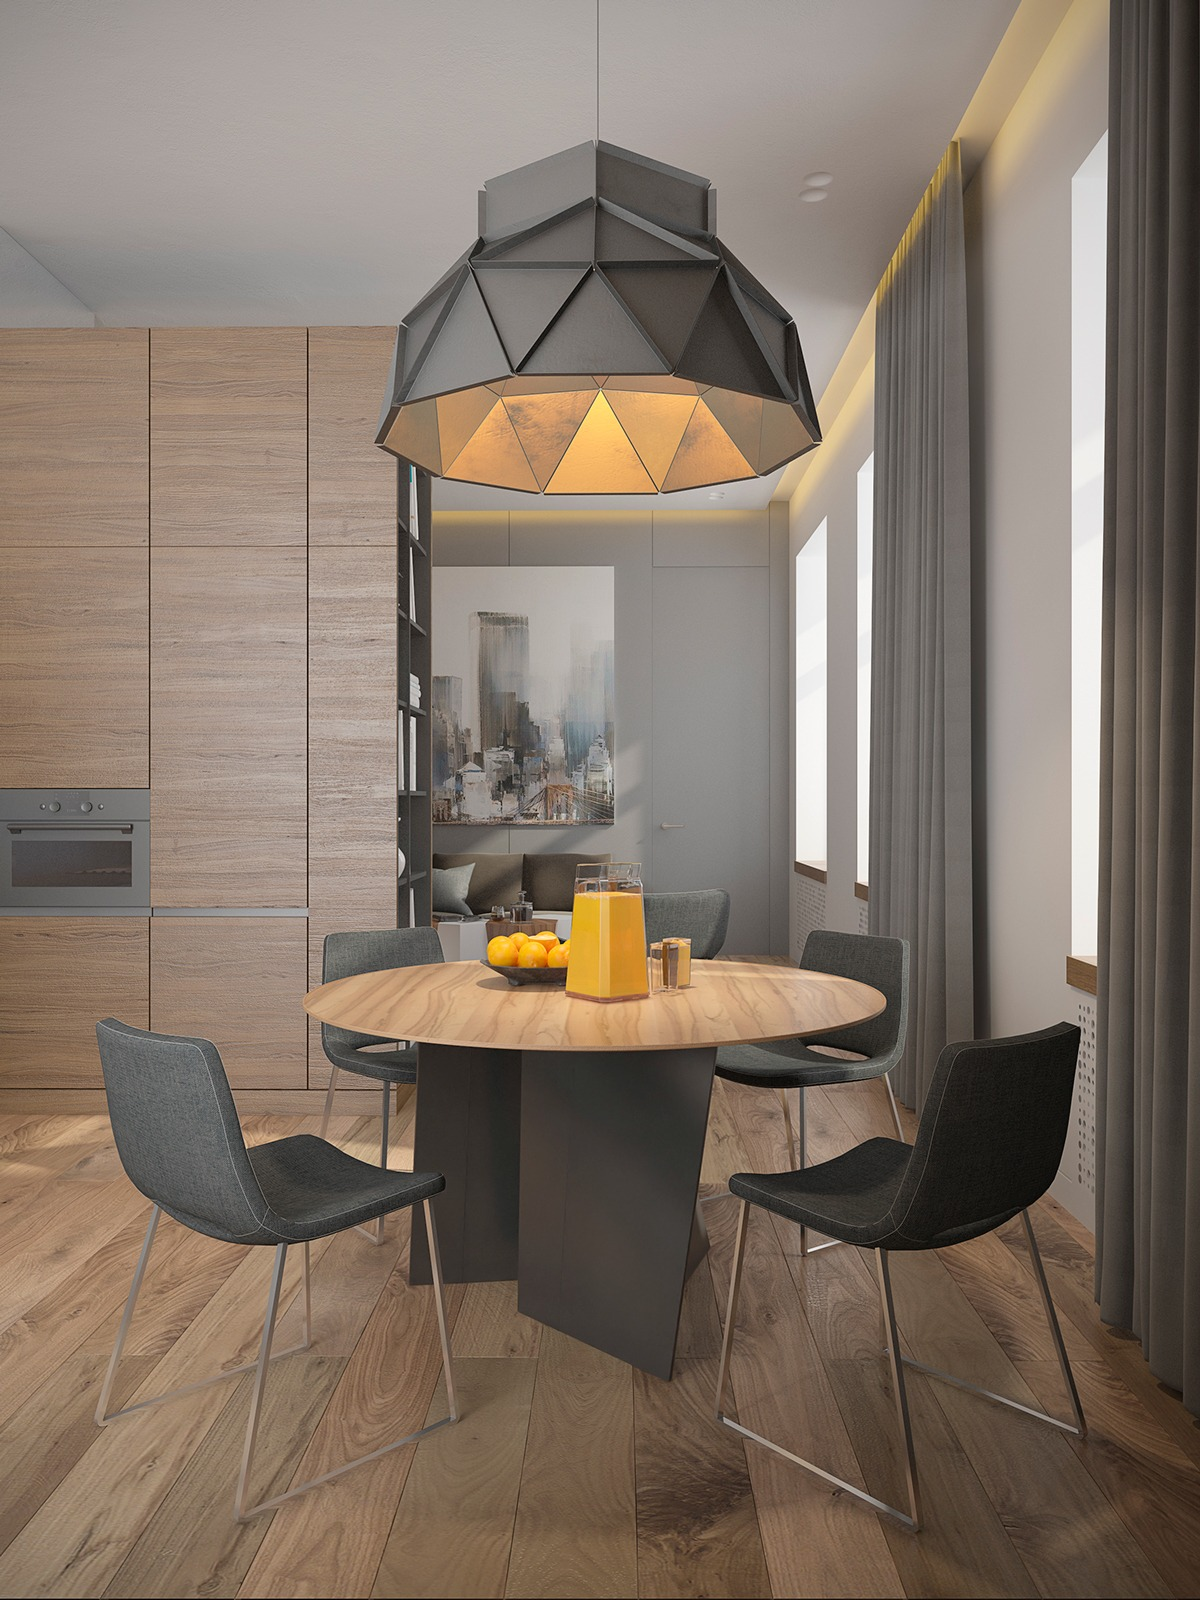 Large Geometric Pendant Light - 3 one bedroom homes with sharp geometric decor